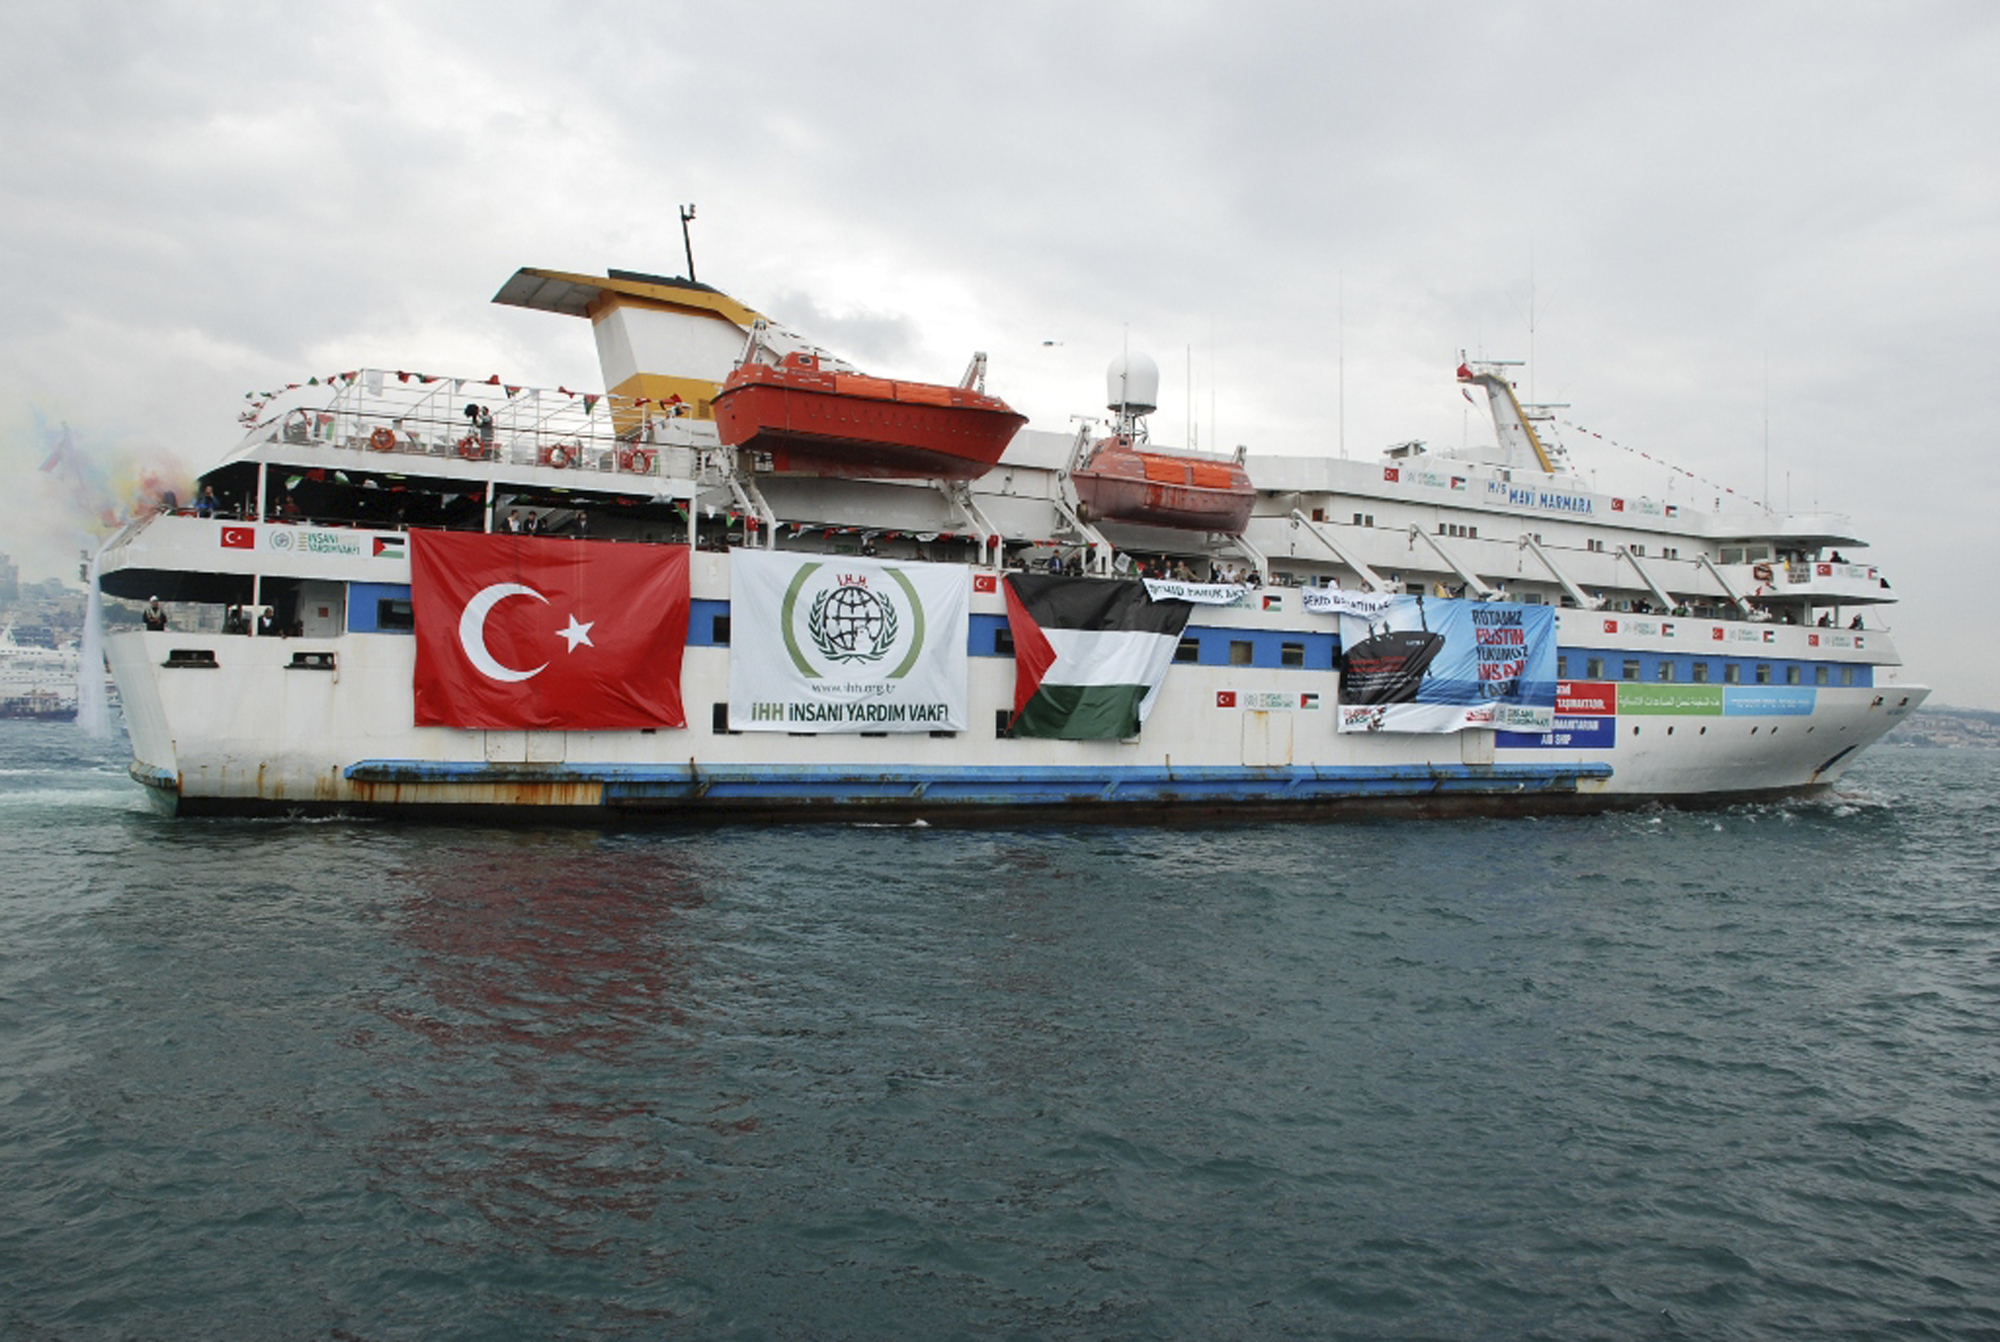 This May 22, 2010 photo provided by the Cyprus-based Free Gaza Movement shows one of the human rights group's ships, the Mavi Marmara, as it sets sail from Turkey carrying aid and hundreds of pro-Palestinian activists to the blockaded Gaza Strip.